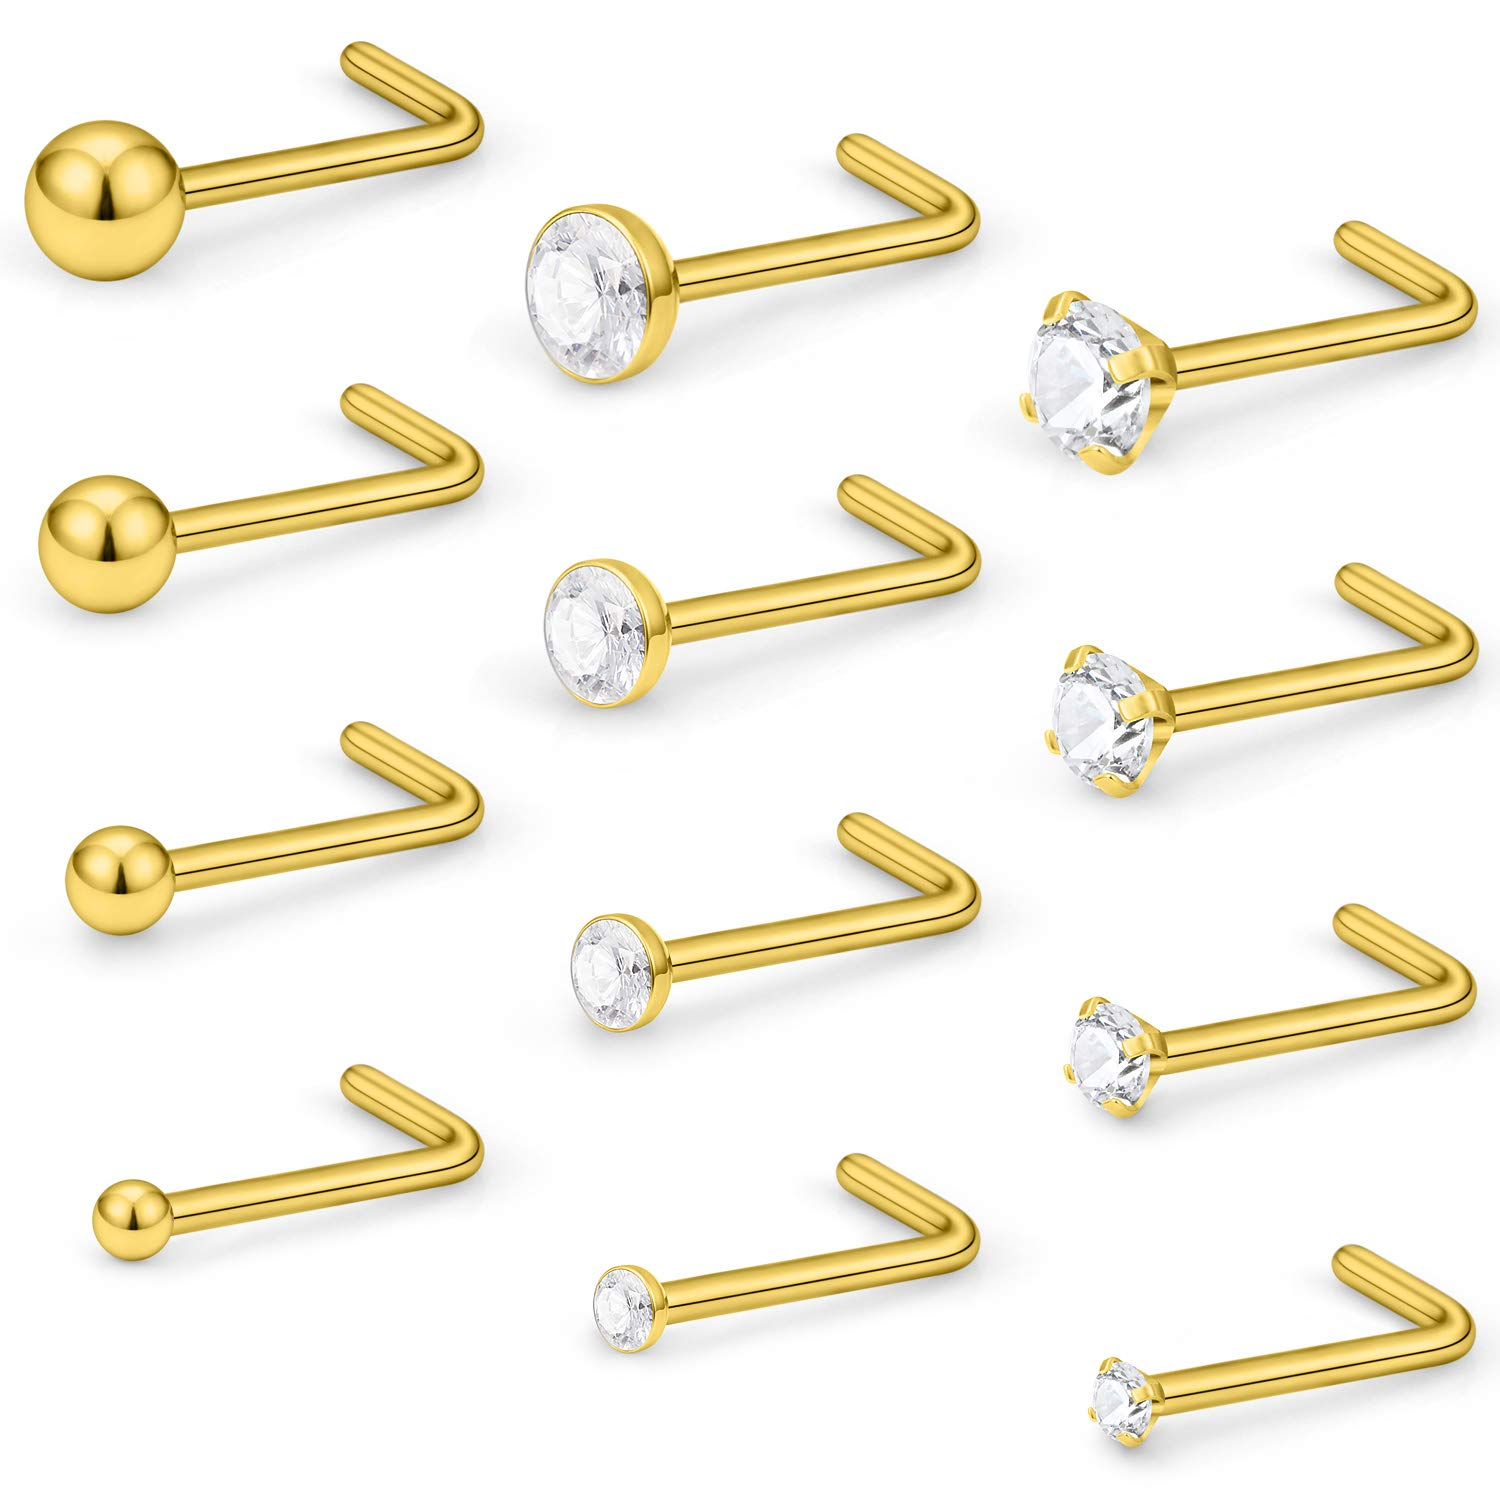 5d411389e Lcolyoli 18 20G 12 Pcs Stainless Steel Nose Rings Studs L-Shape Piercing  Body Jewelry 1.5mm 2mm 2.5mm 3mm Clear Cubic-Zirconia Inlaid LCOW-0071